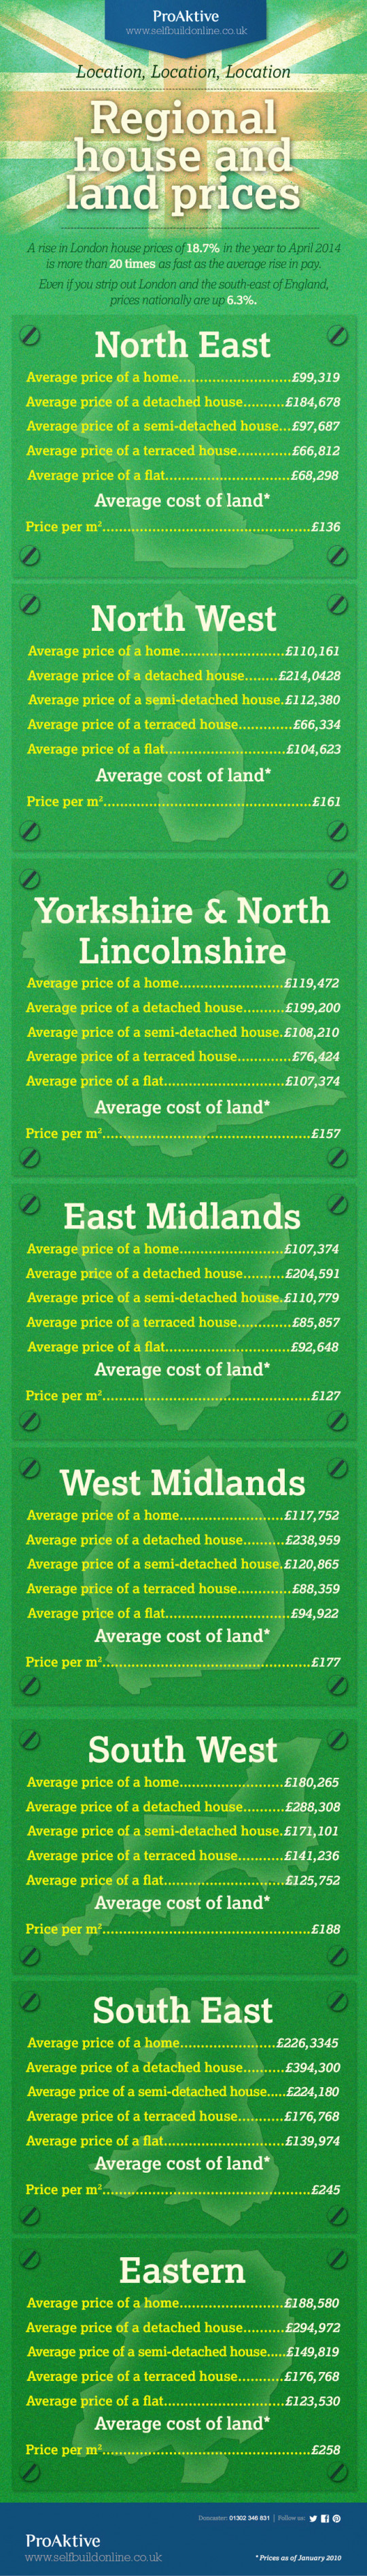 Regional house and land prices